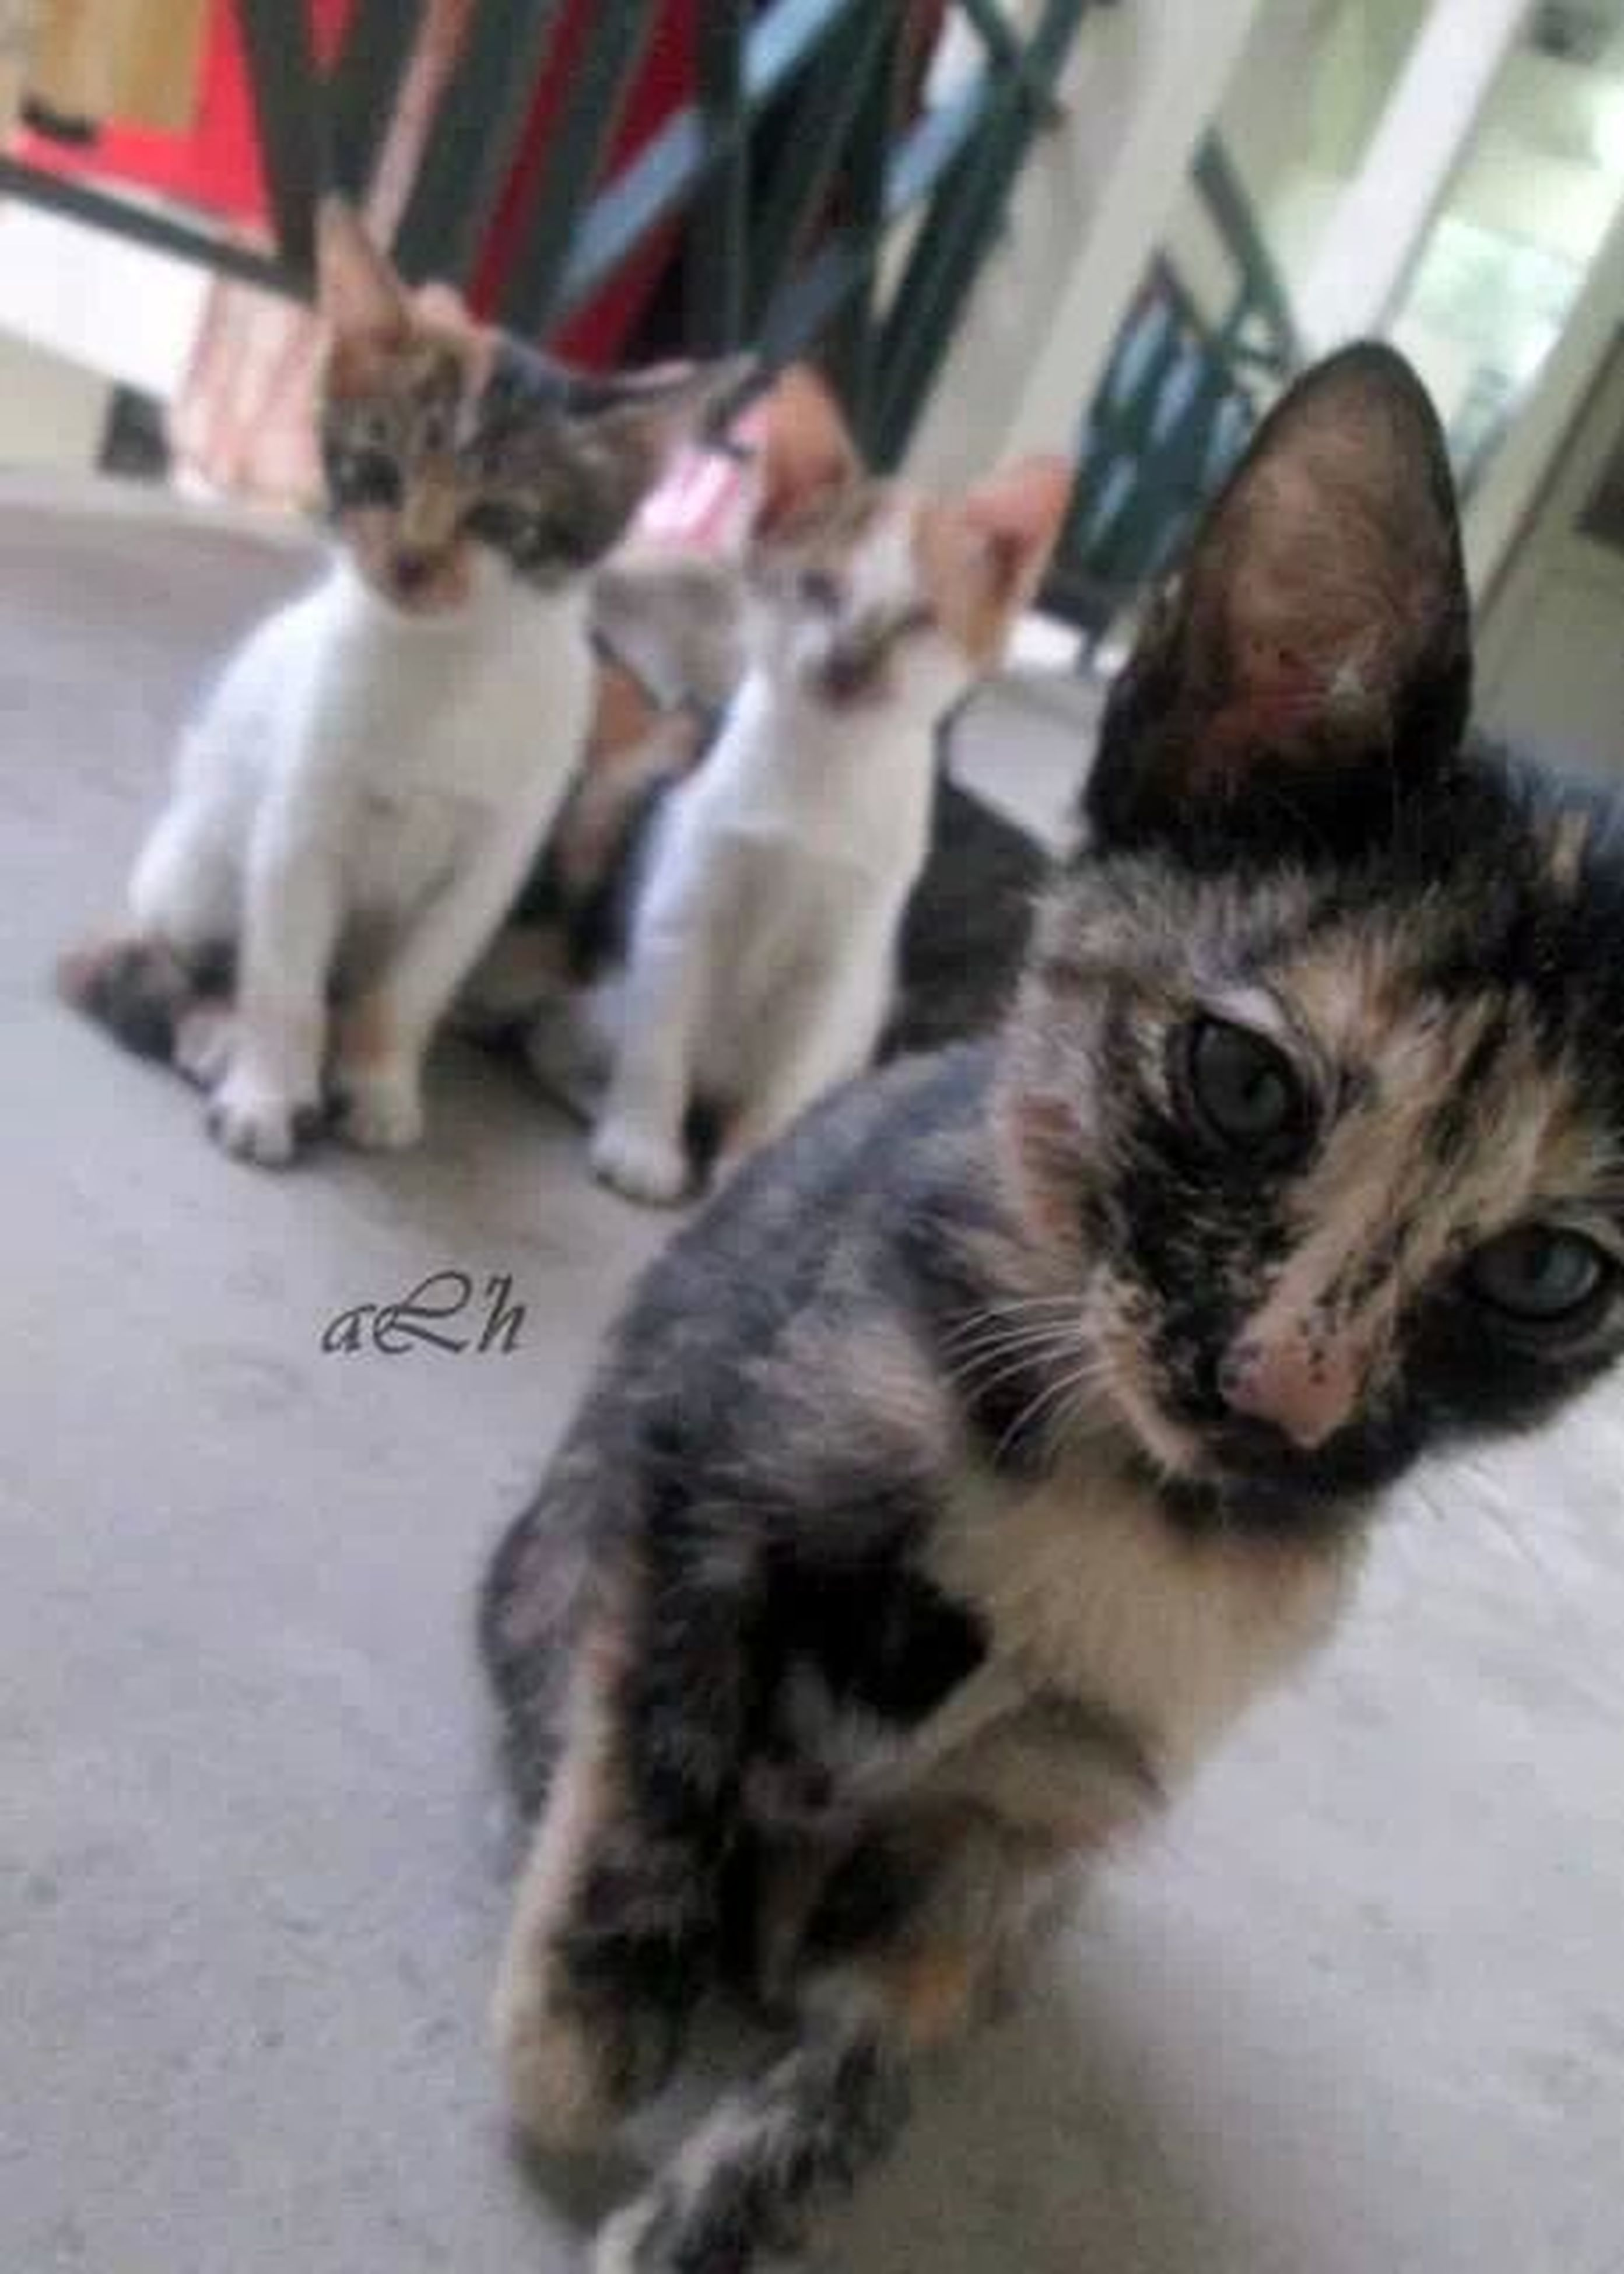 animal themes, domestic animals, pets, mammal, one animal, domestic cat, cat, two animals, indoors, feline, focus on foreground, young animal, togetherness, whisker, incidental people, kitten, close-up, street, portrait, looking at camera